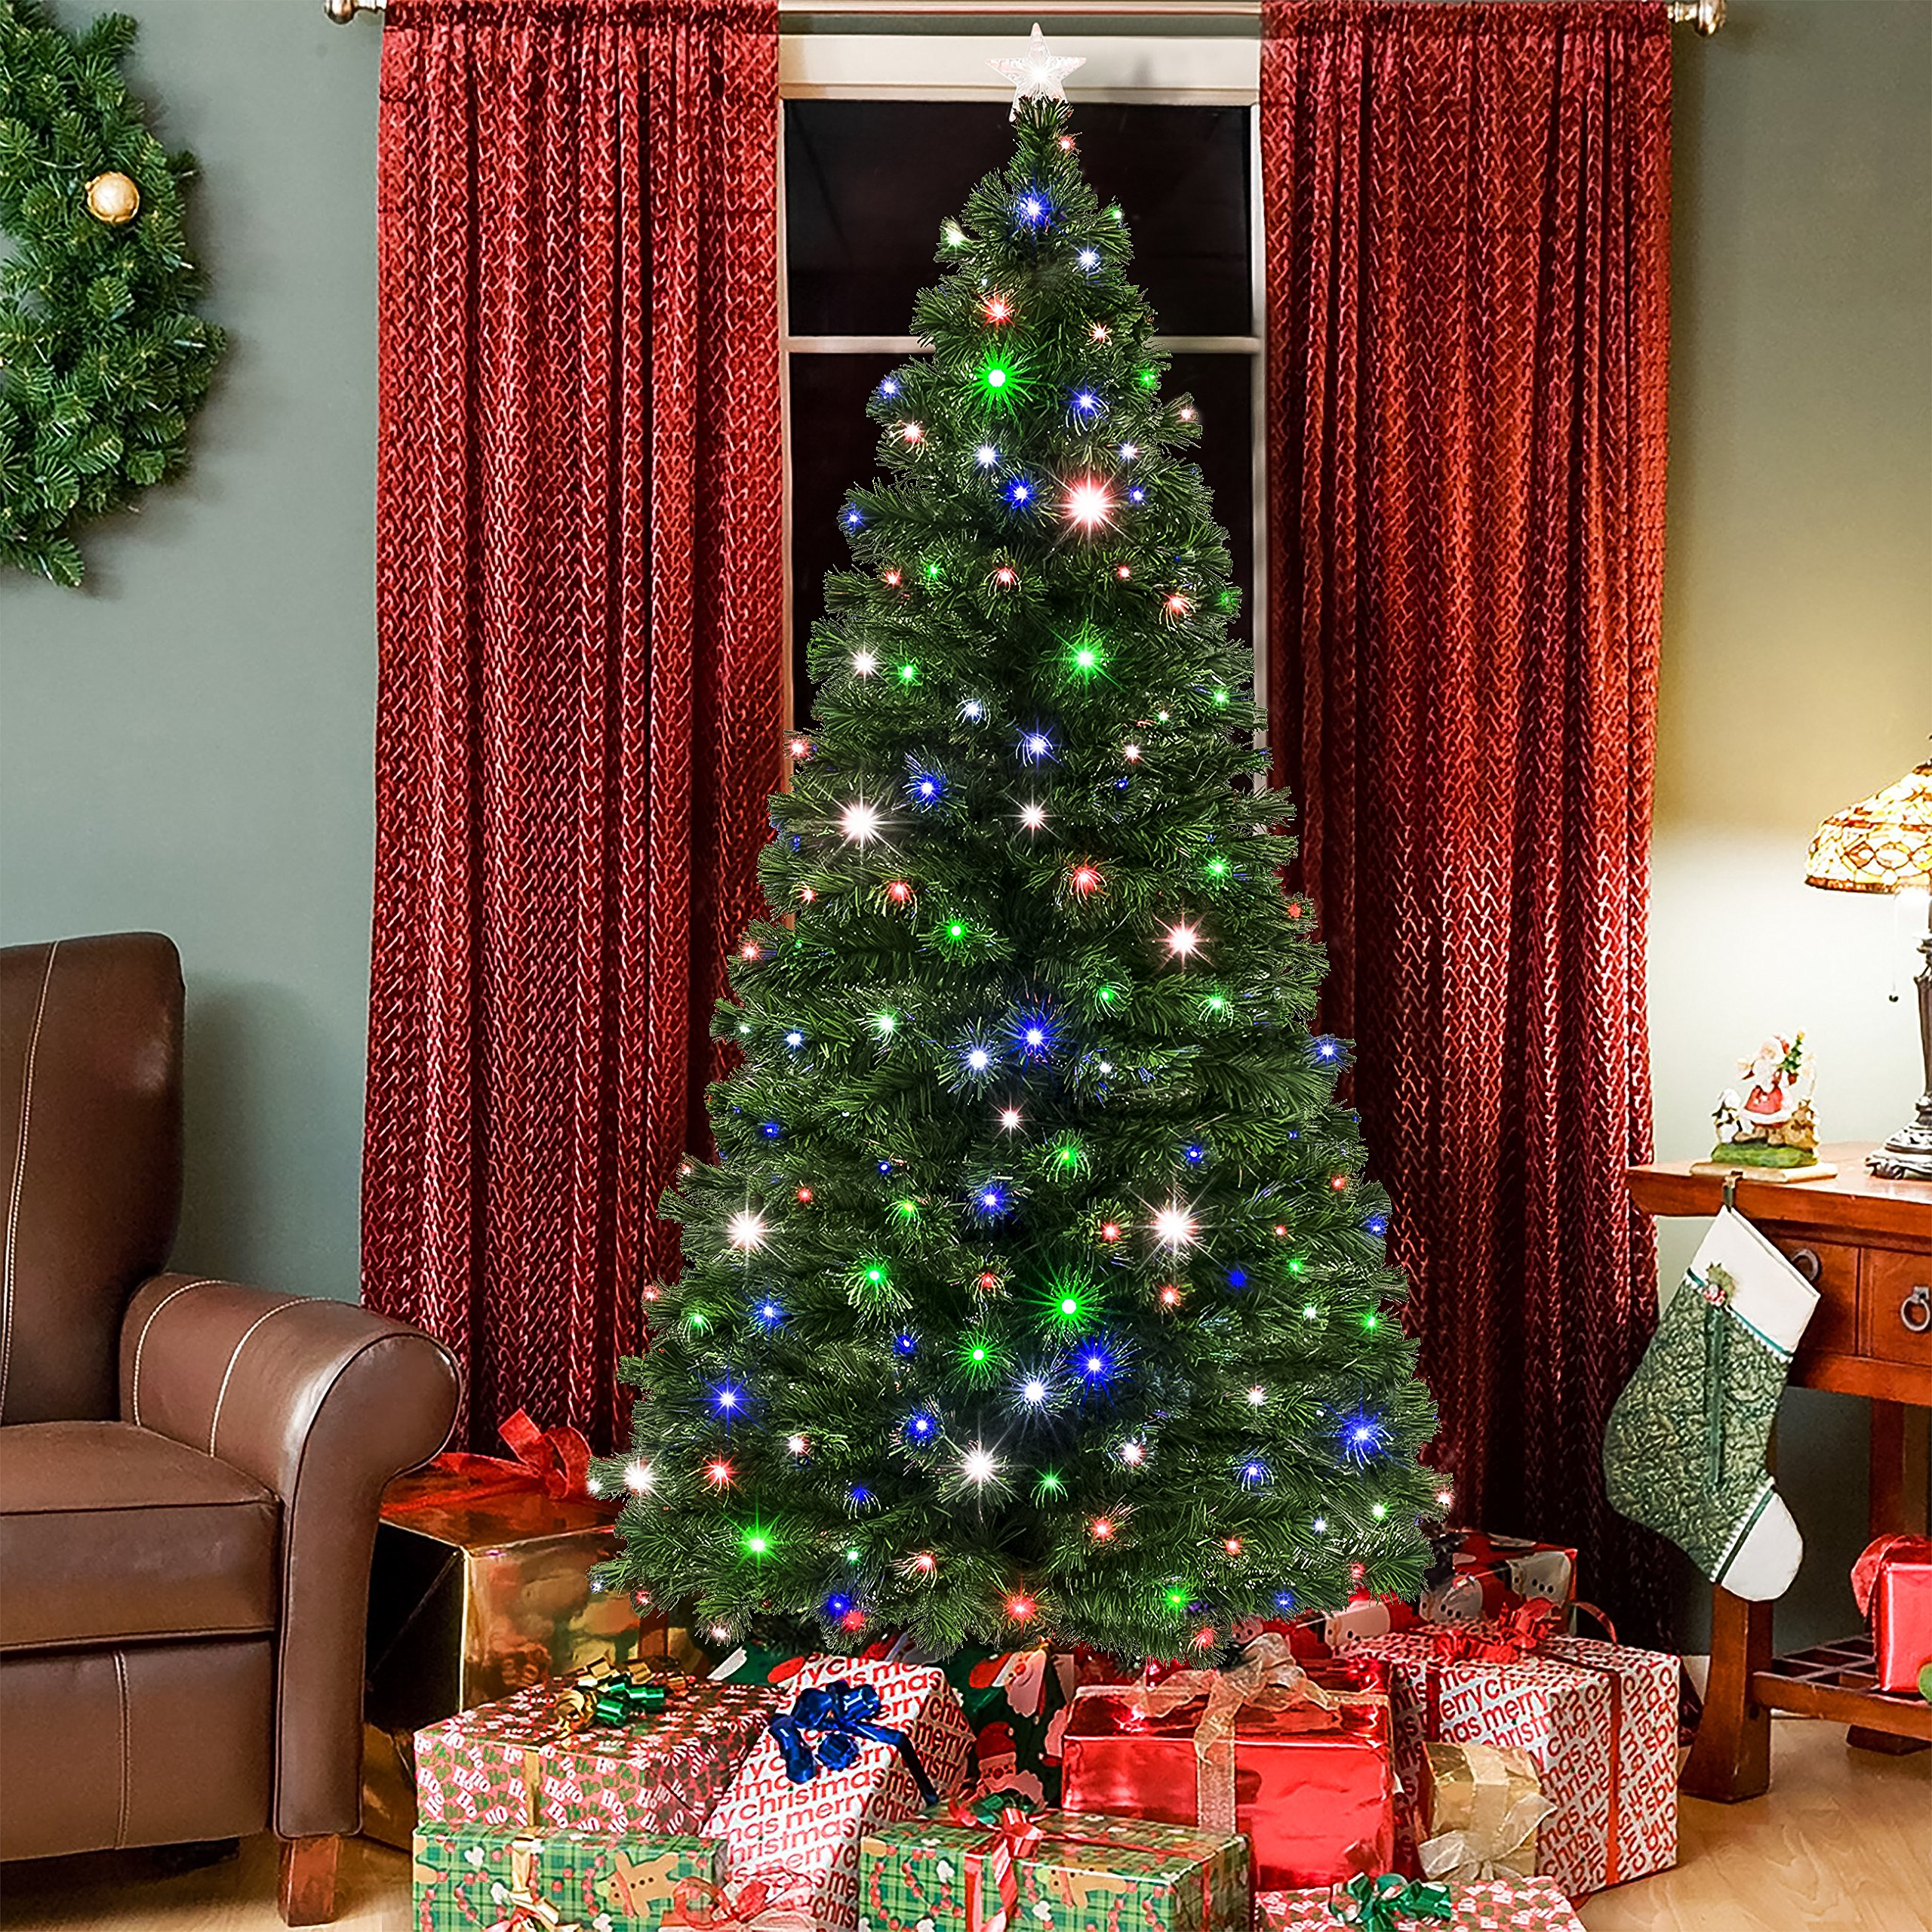 best choice products 7ft pre lit fiber optic artificial christmas pine tree w 280 - Artificial Christmas Trees Amazon